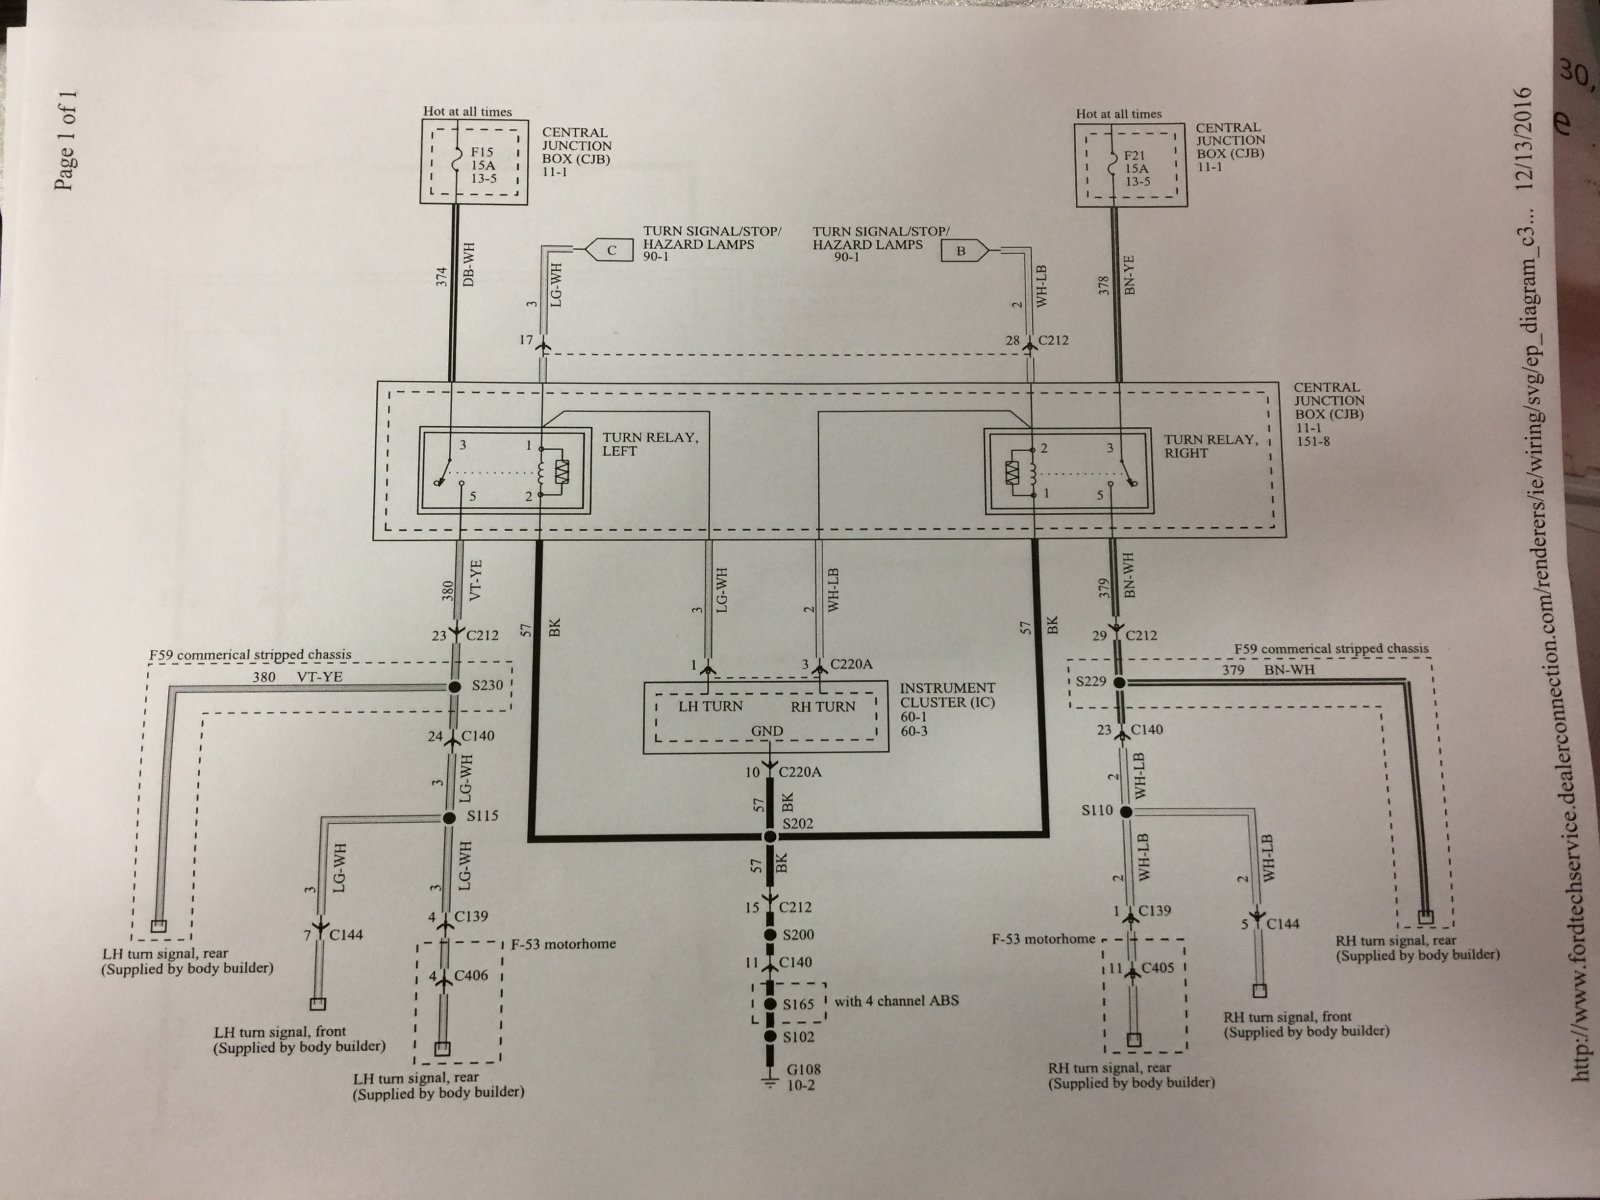 2013 ford f53 trailer wiring - wiring diagram recent pace-desk -  pace-desk.cosavedereanapoli.it  pace-desk.cosavedereanapoli.it